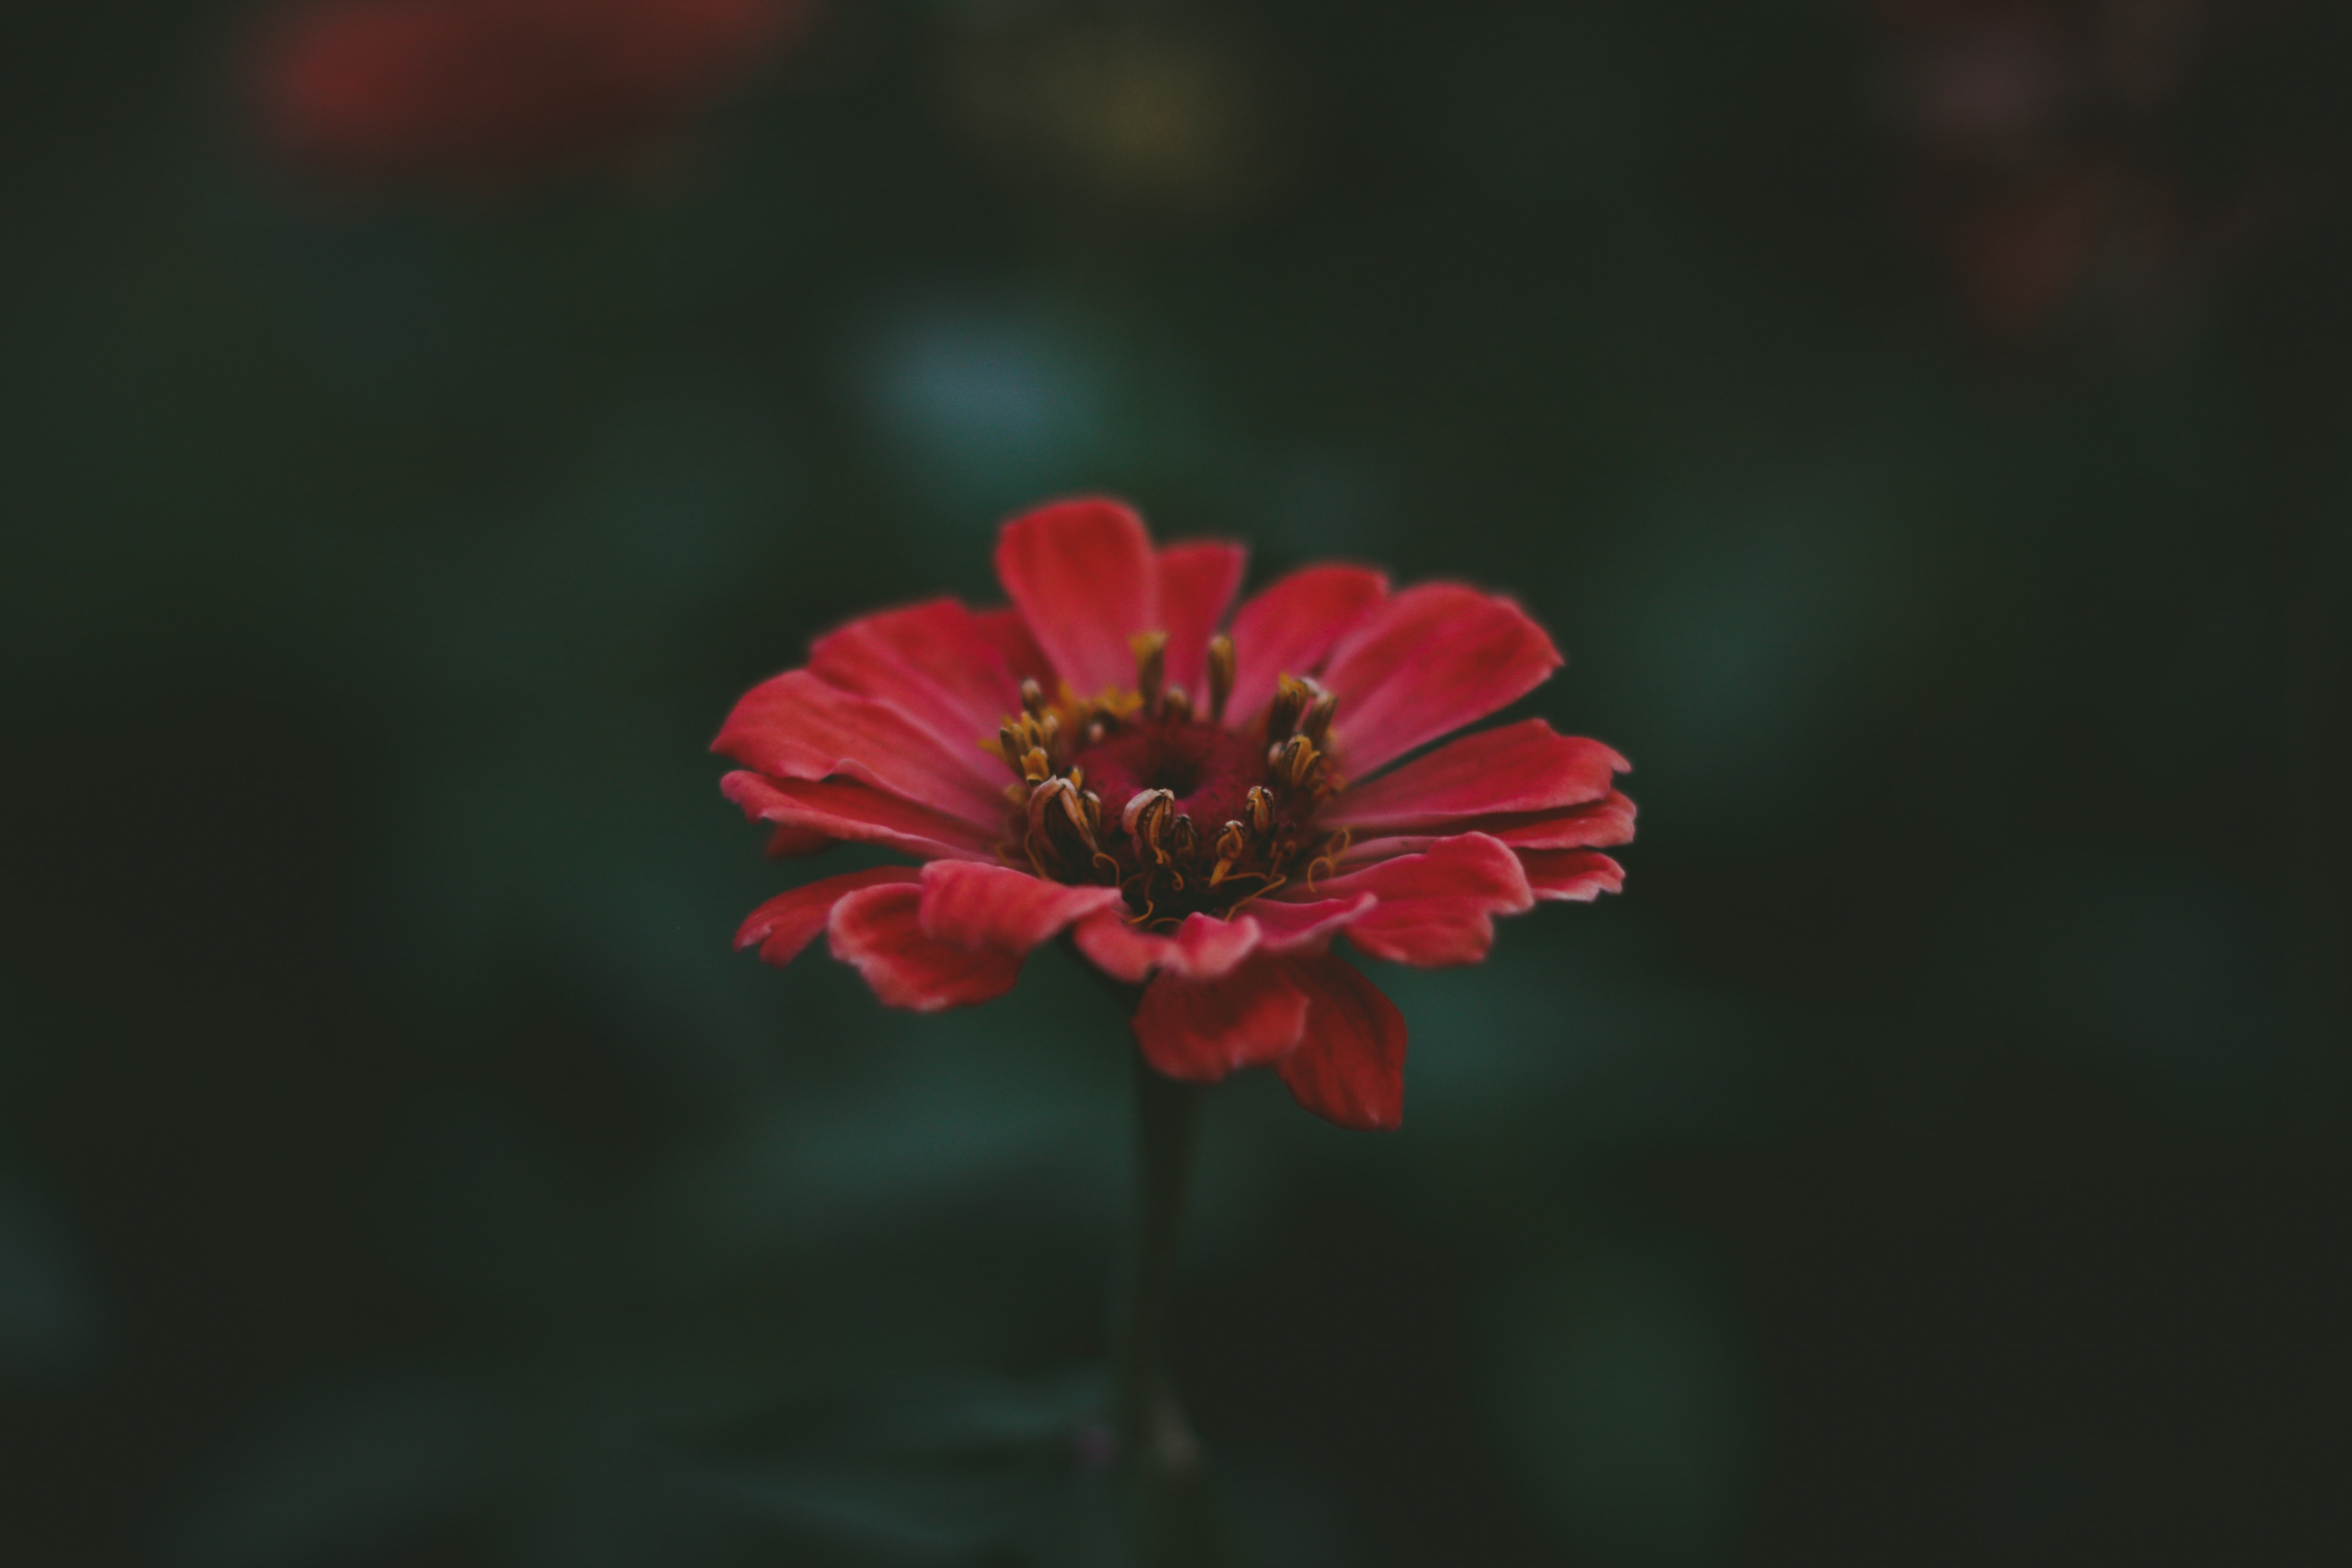 focus photography of red petaled flower